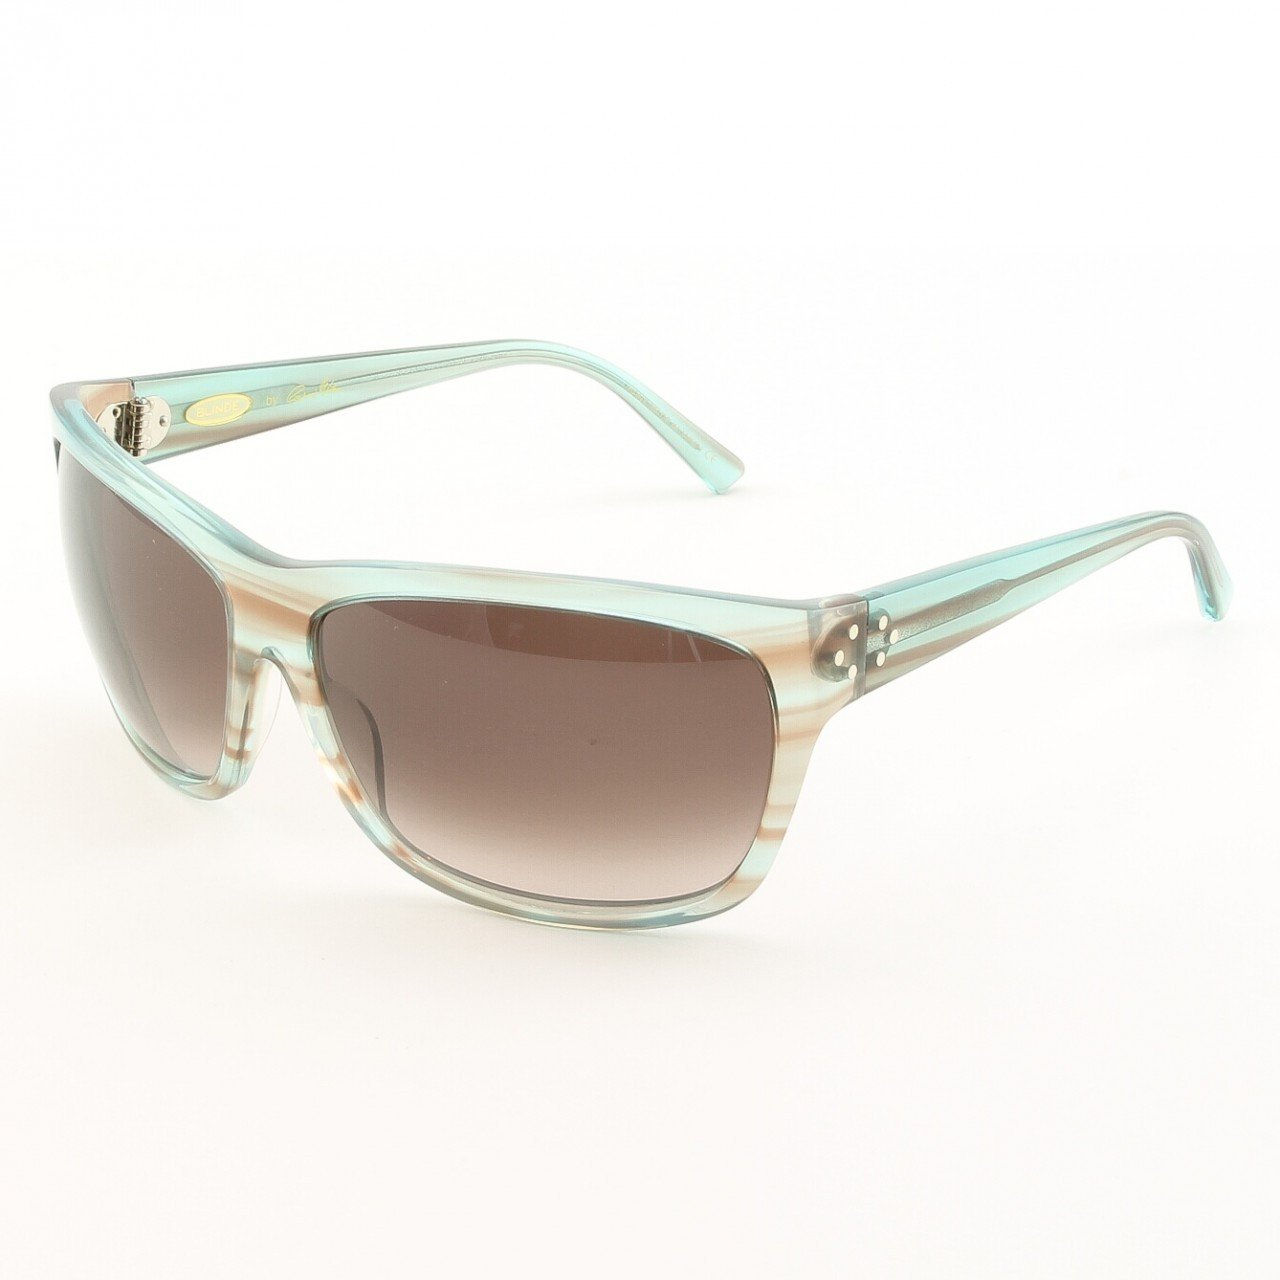 Blinde I Want Candy Women's Sunglasses Col. Blue Crystal Tortoise with Purple Gradient Lenses